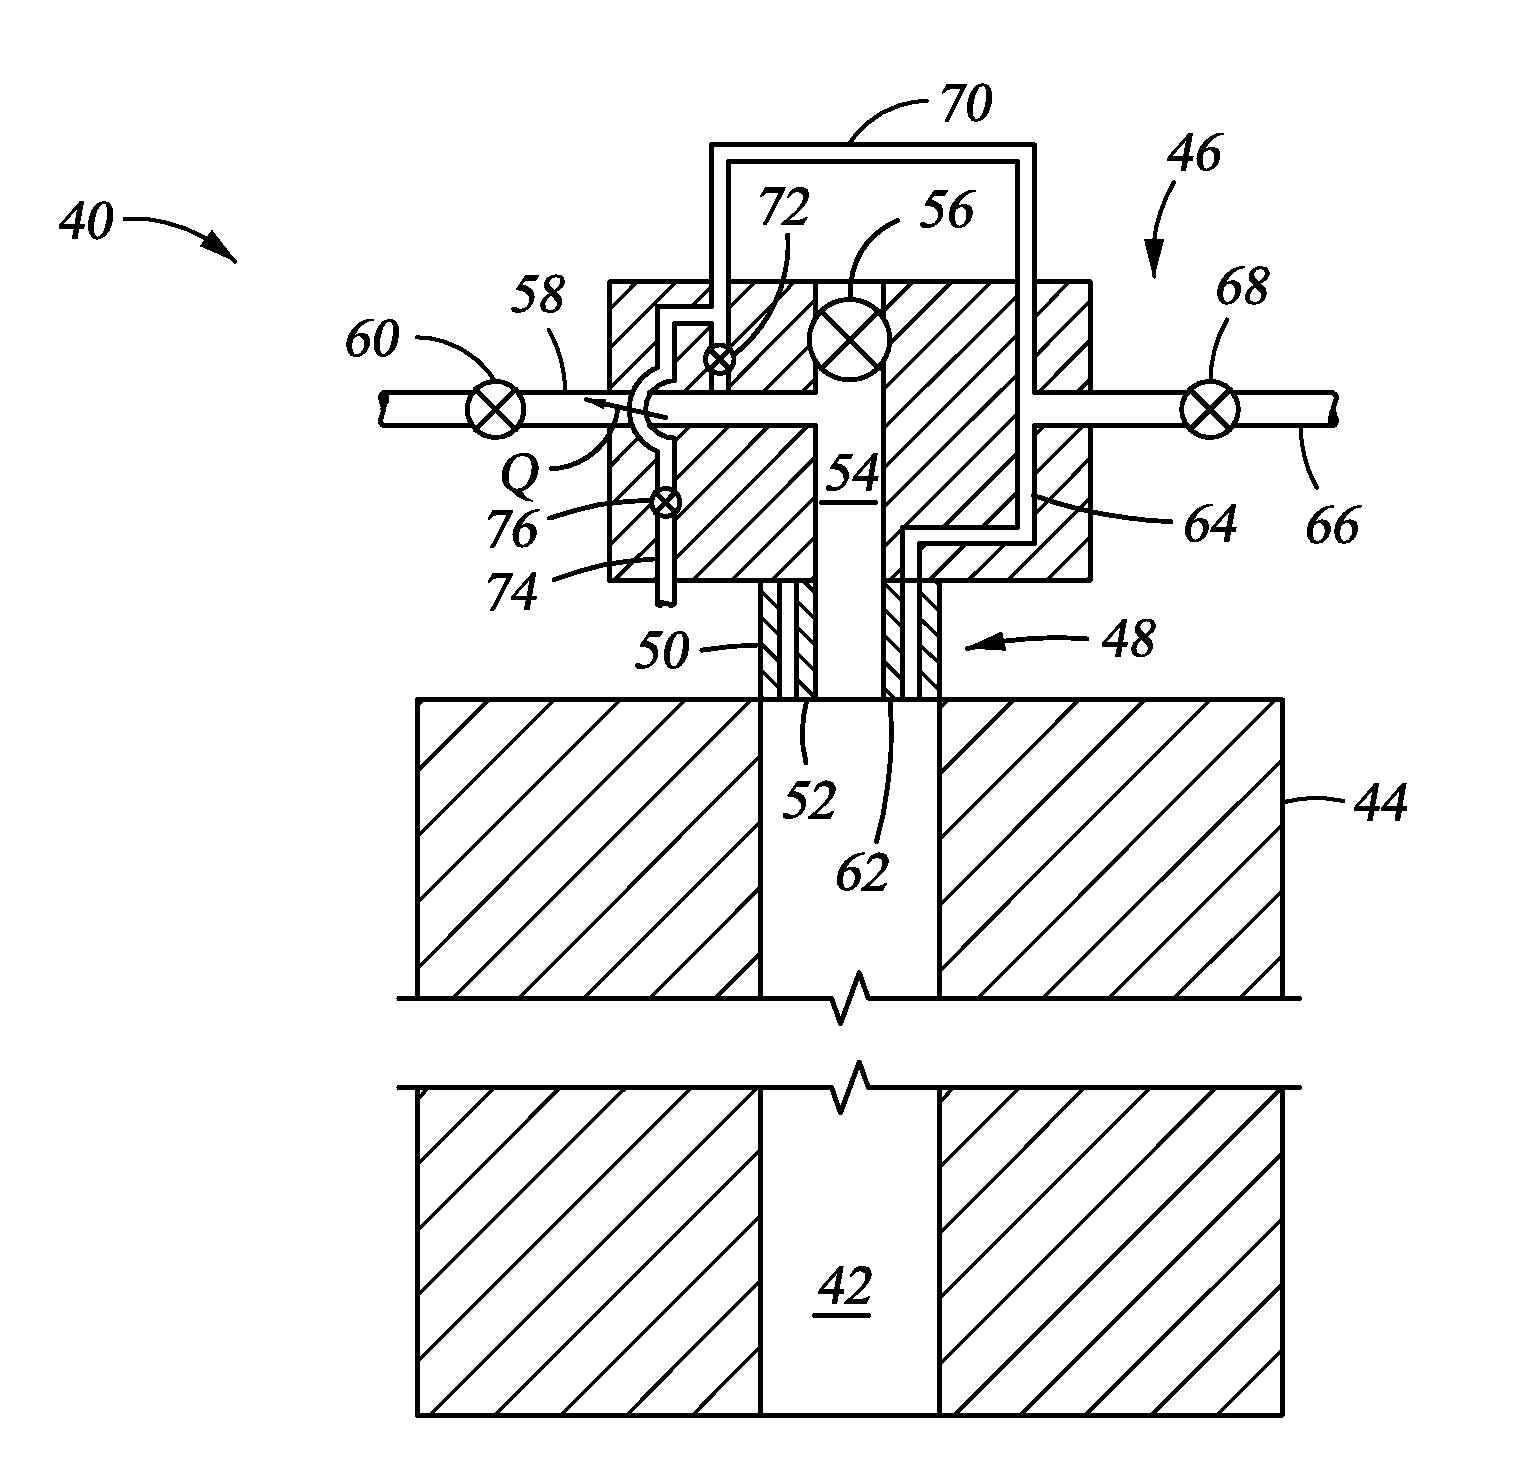 Vent System Patent Us20120305259 Annulus Vent System For Subsea Wellhead